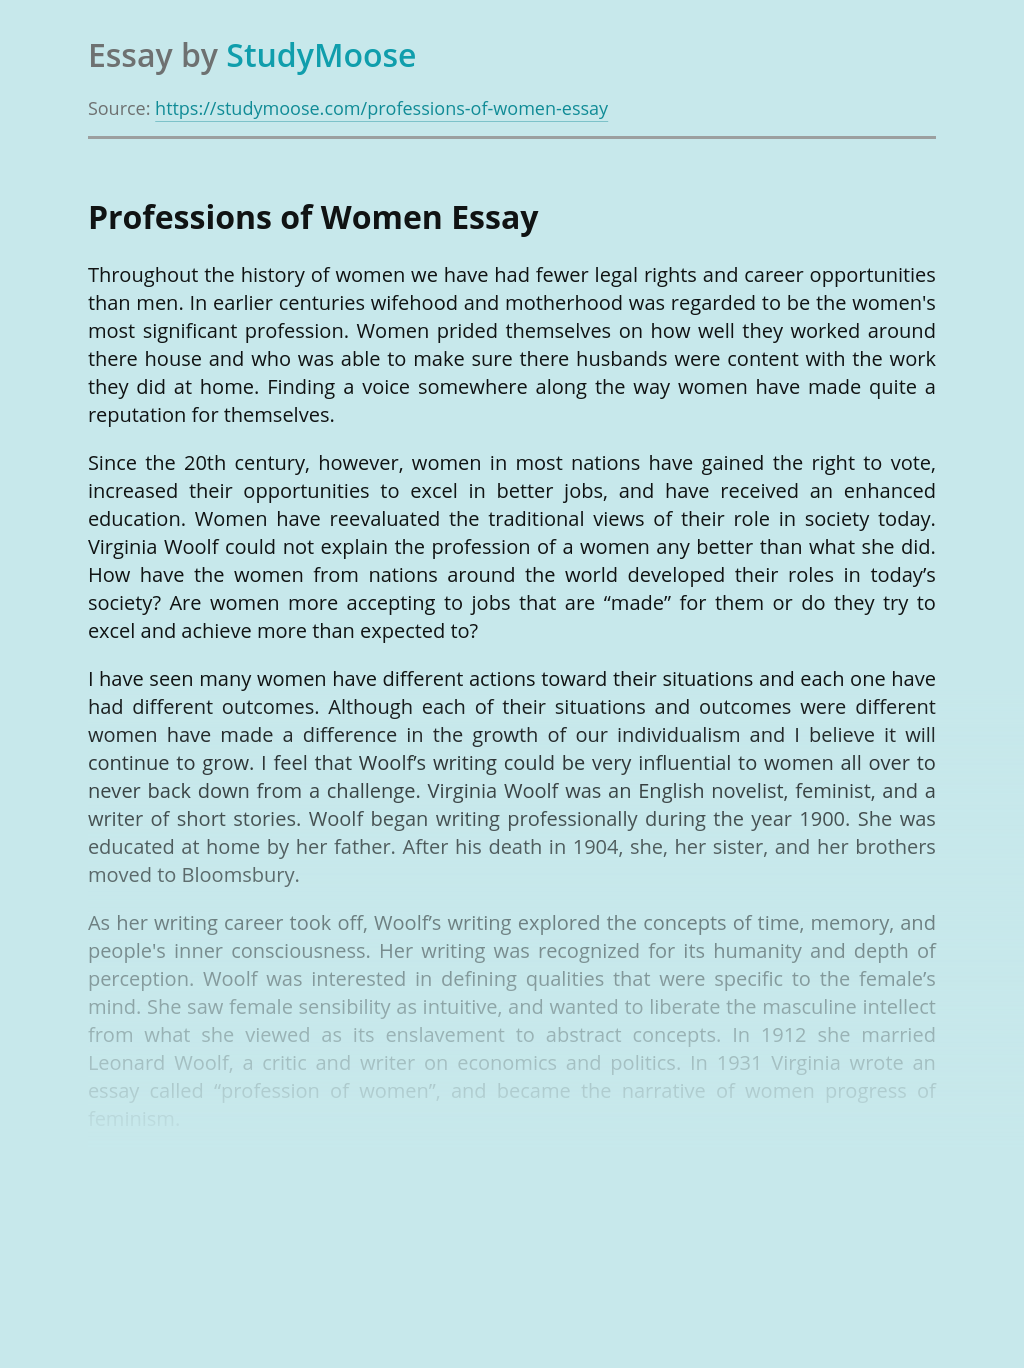 Professions of Women